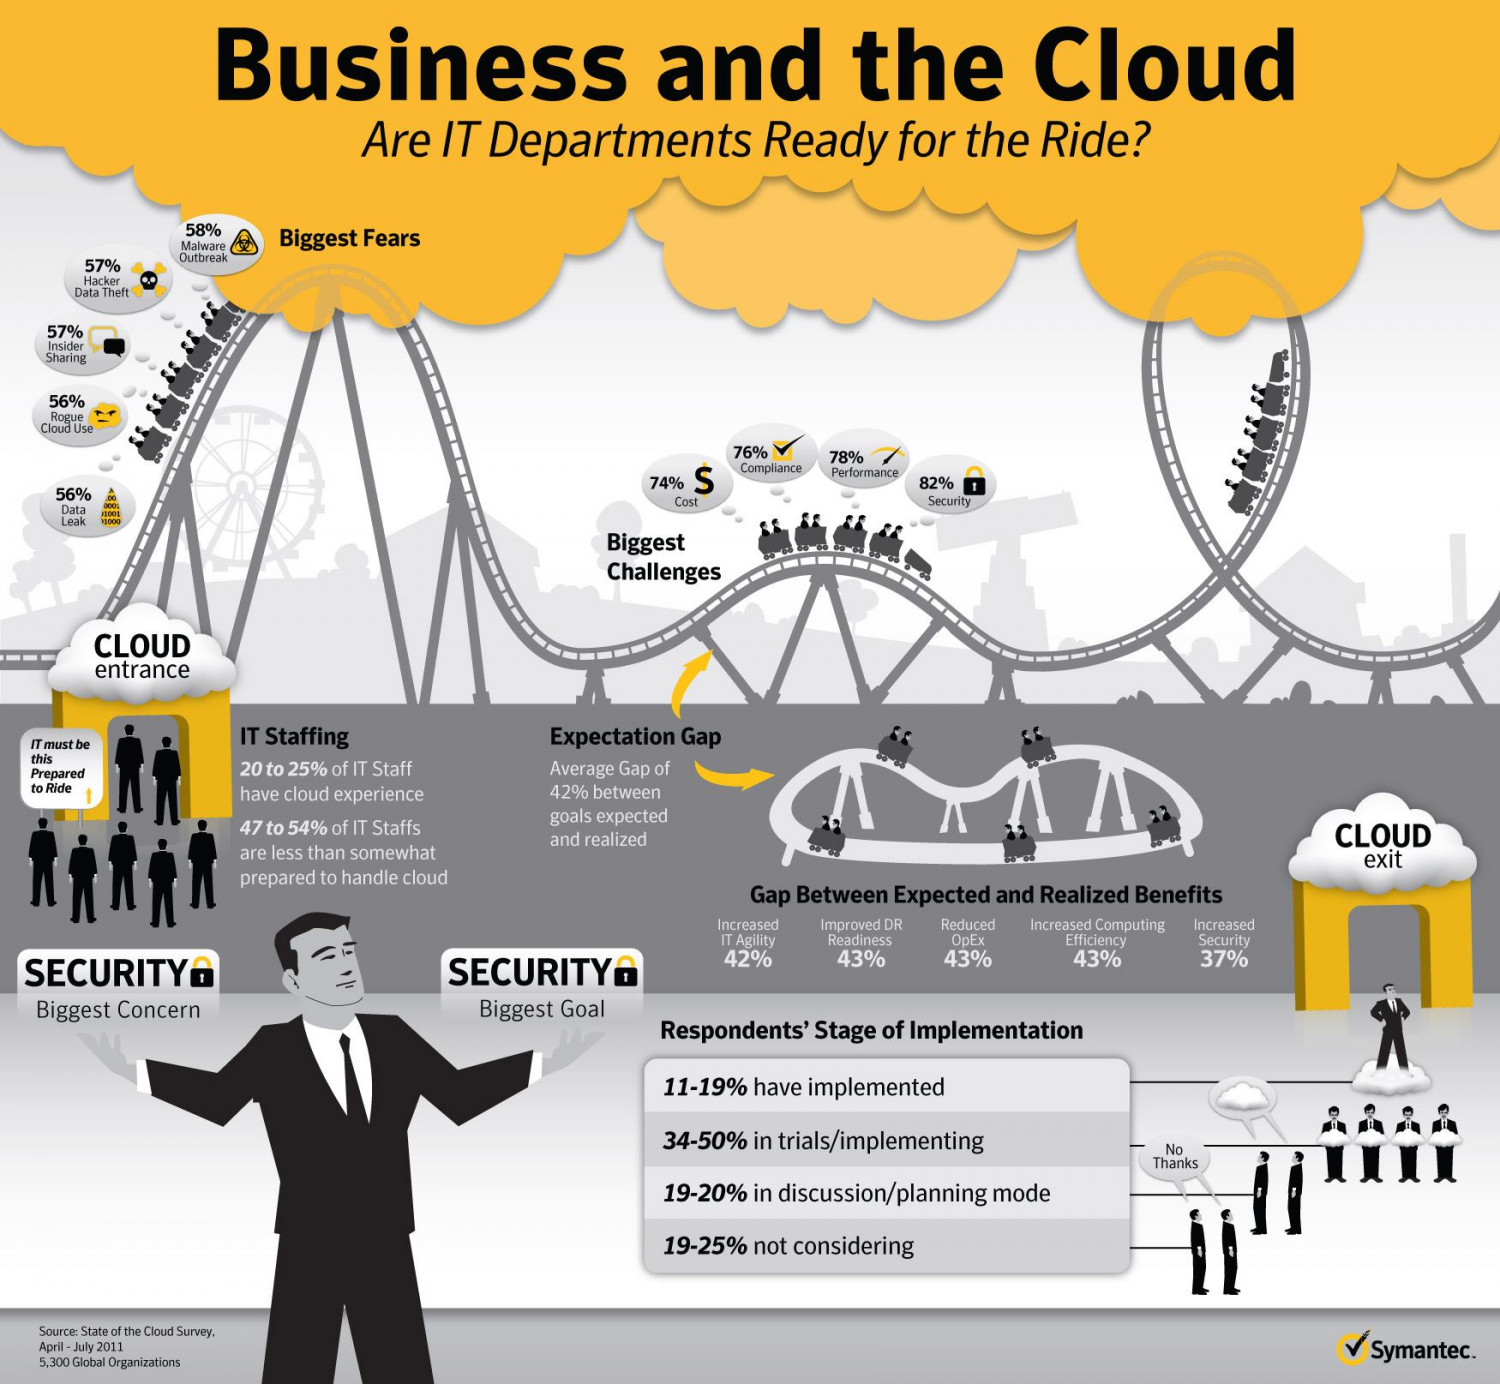 Business and the Cloud Infographic